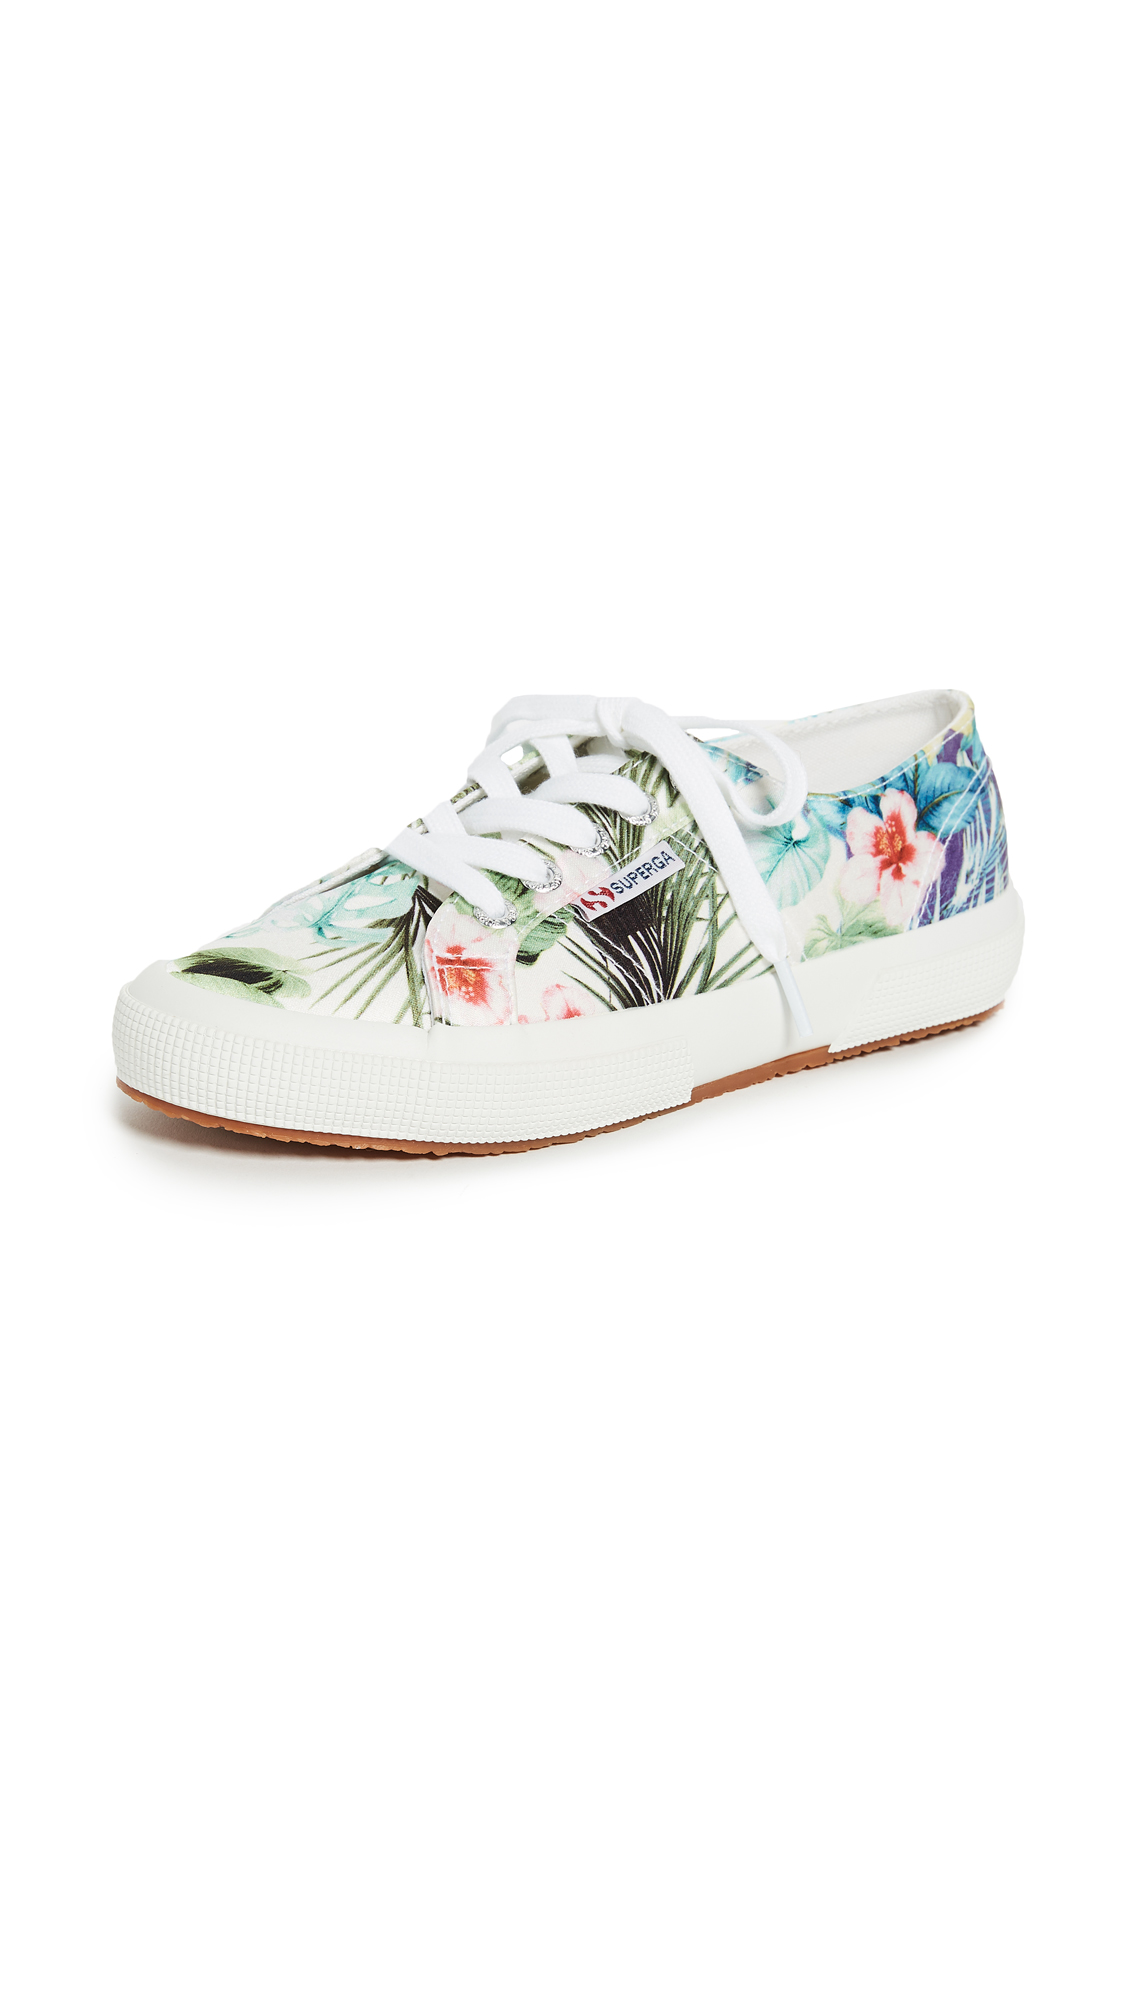 Photo of Superga 2750 Hawaiian Floral Sneakers - buy Superga shoes